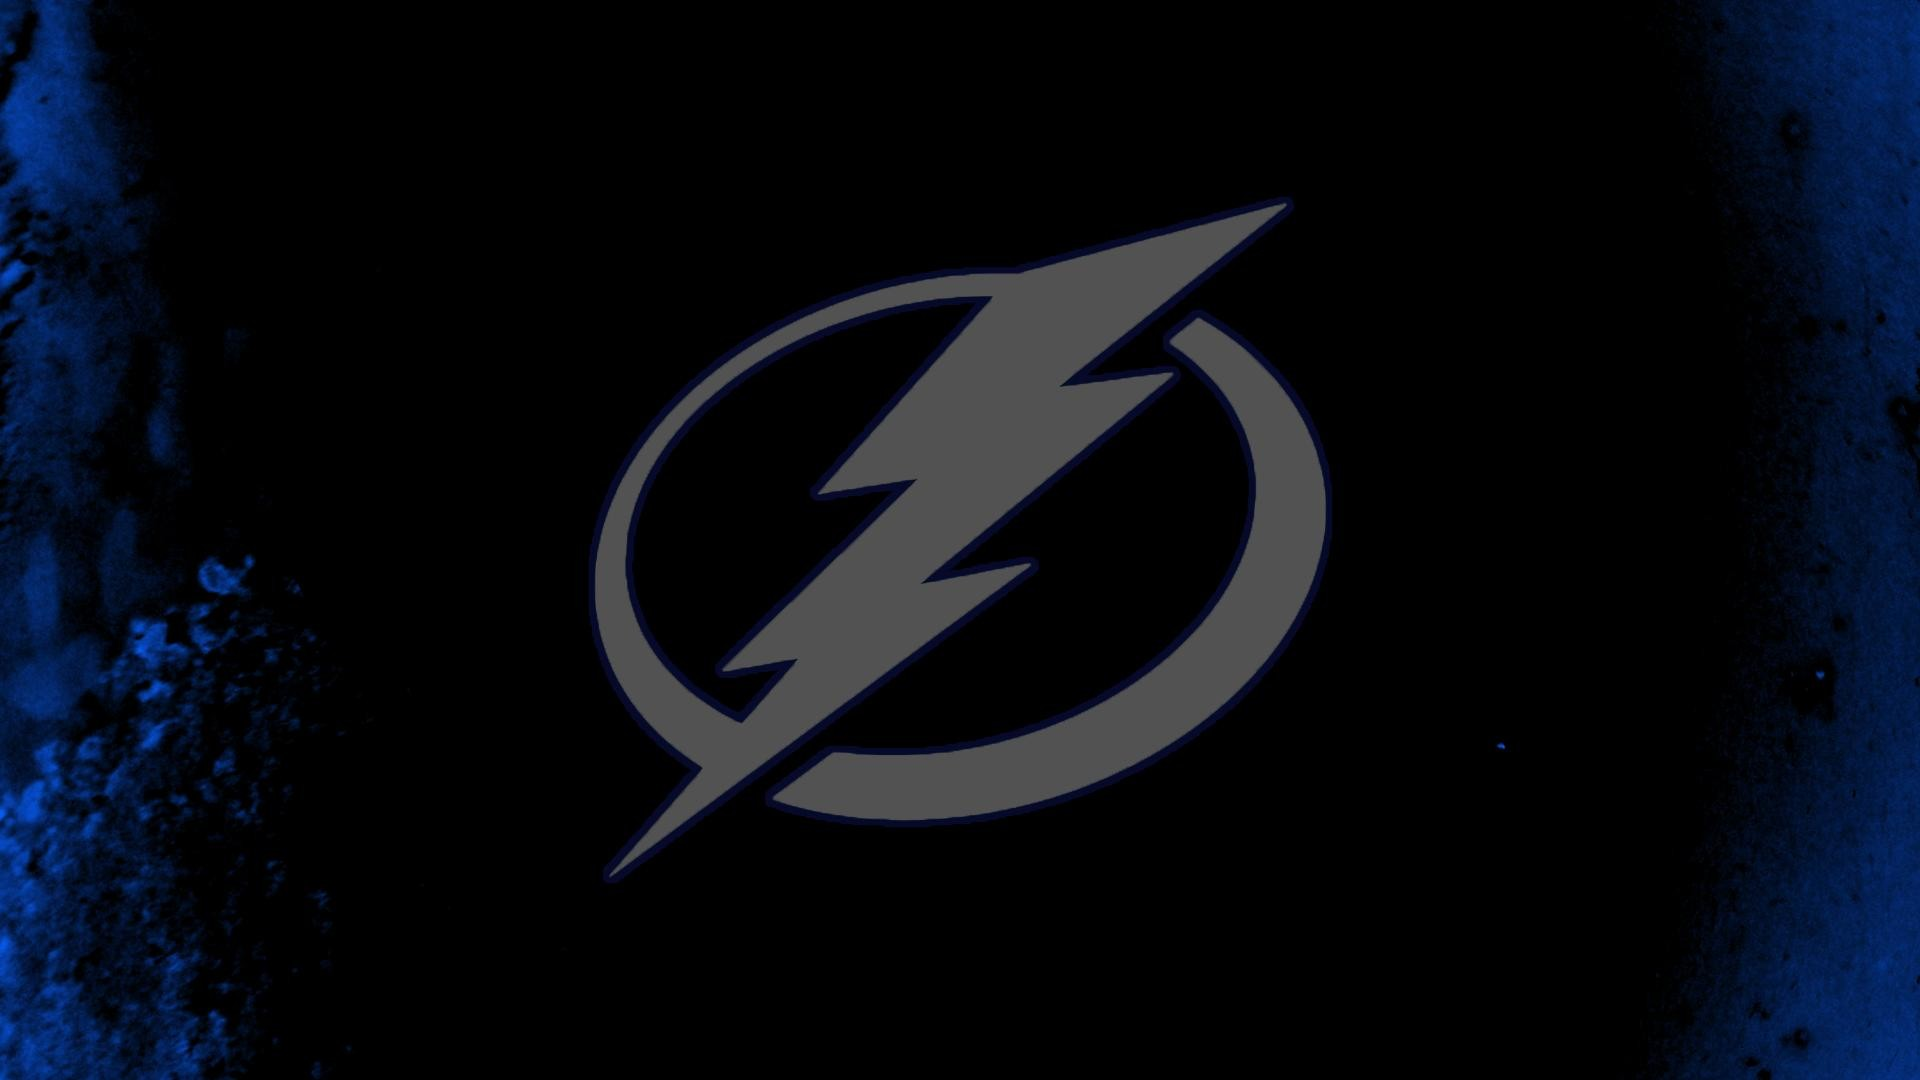 1920x1080 Tampa Bay Lightning HD Wallpaper | Background Image |  | ID:658774  - Wallpaper Abyss